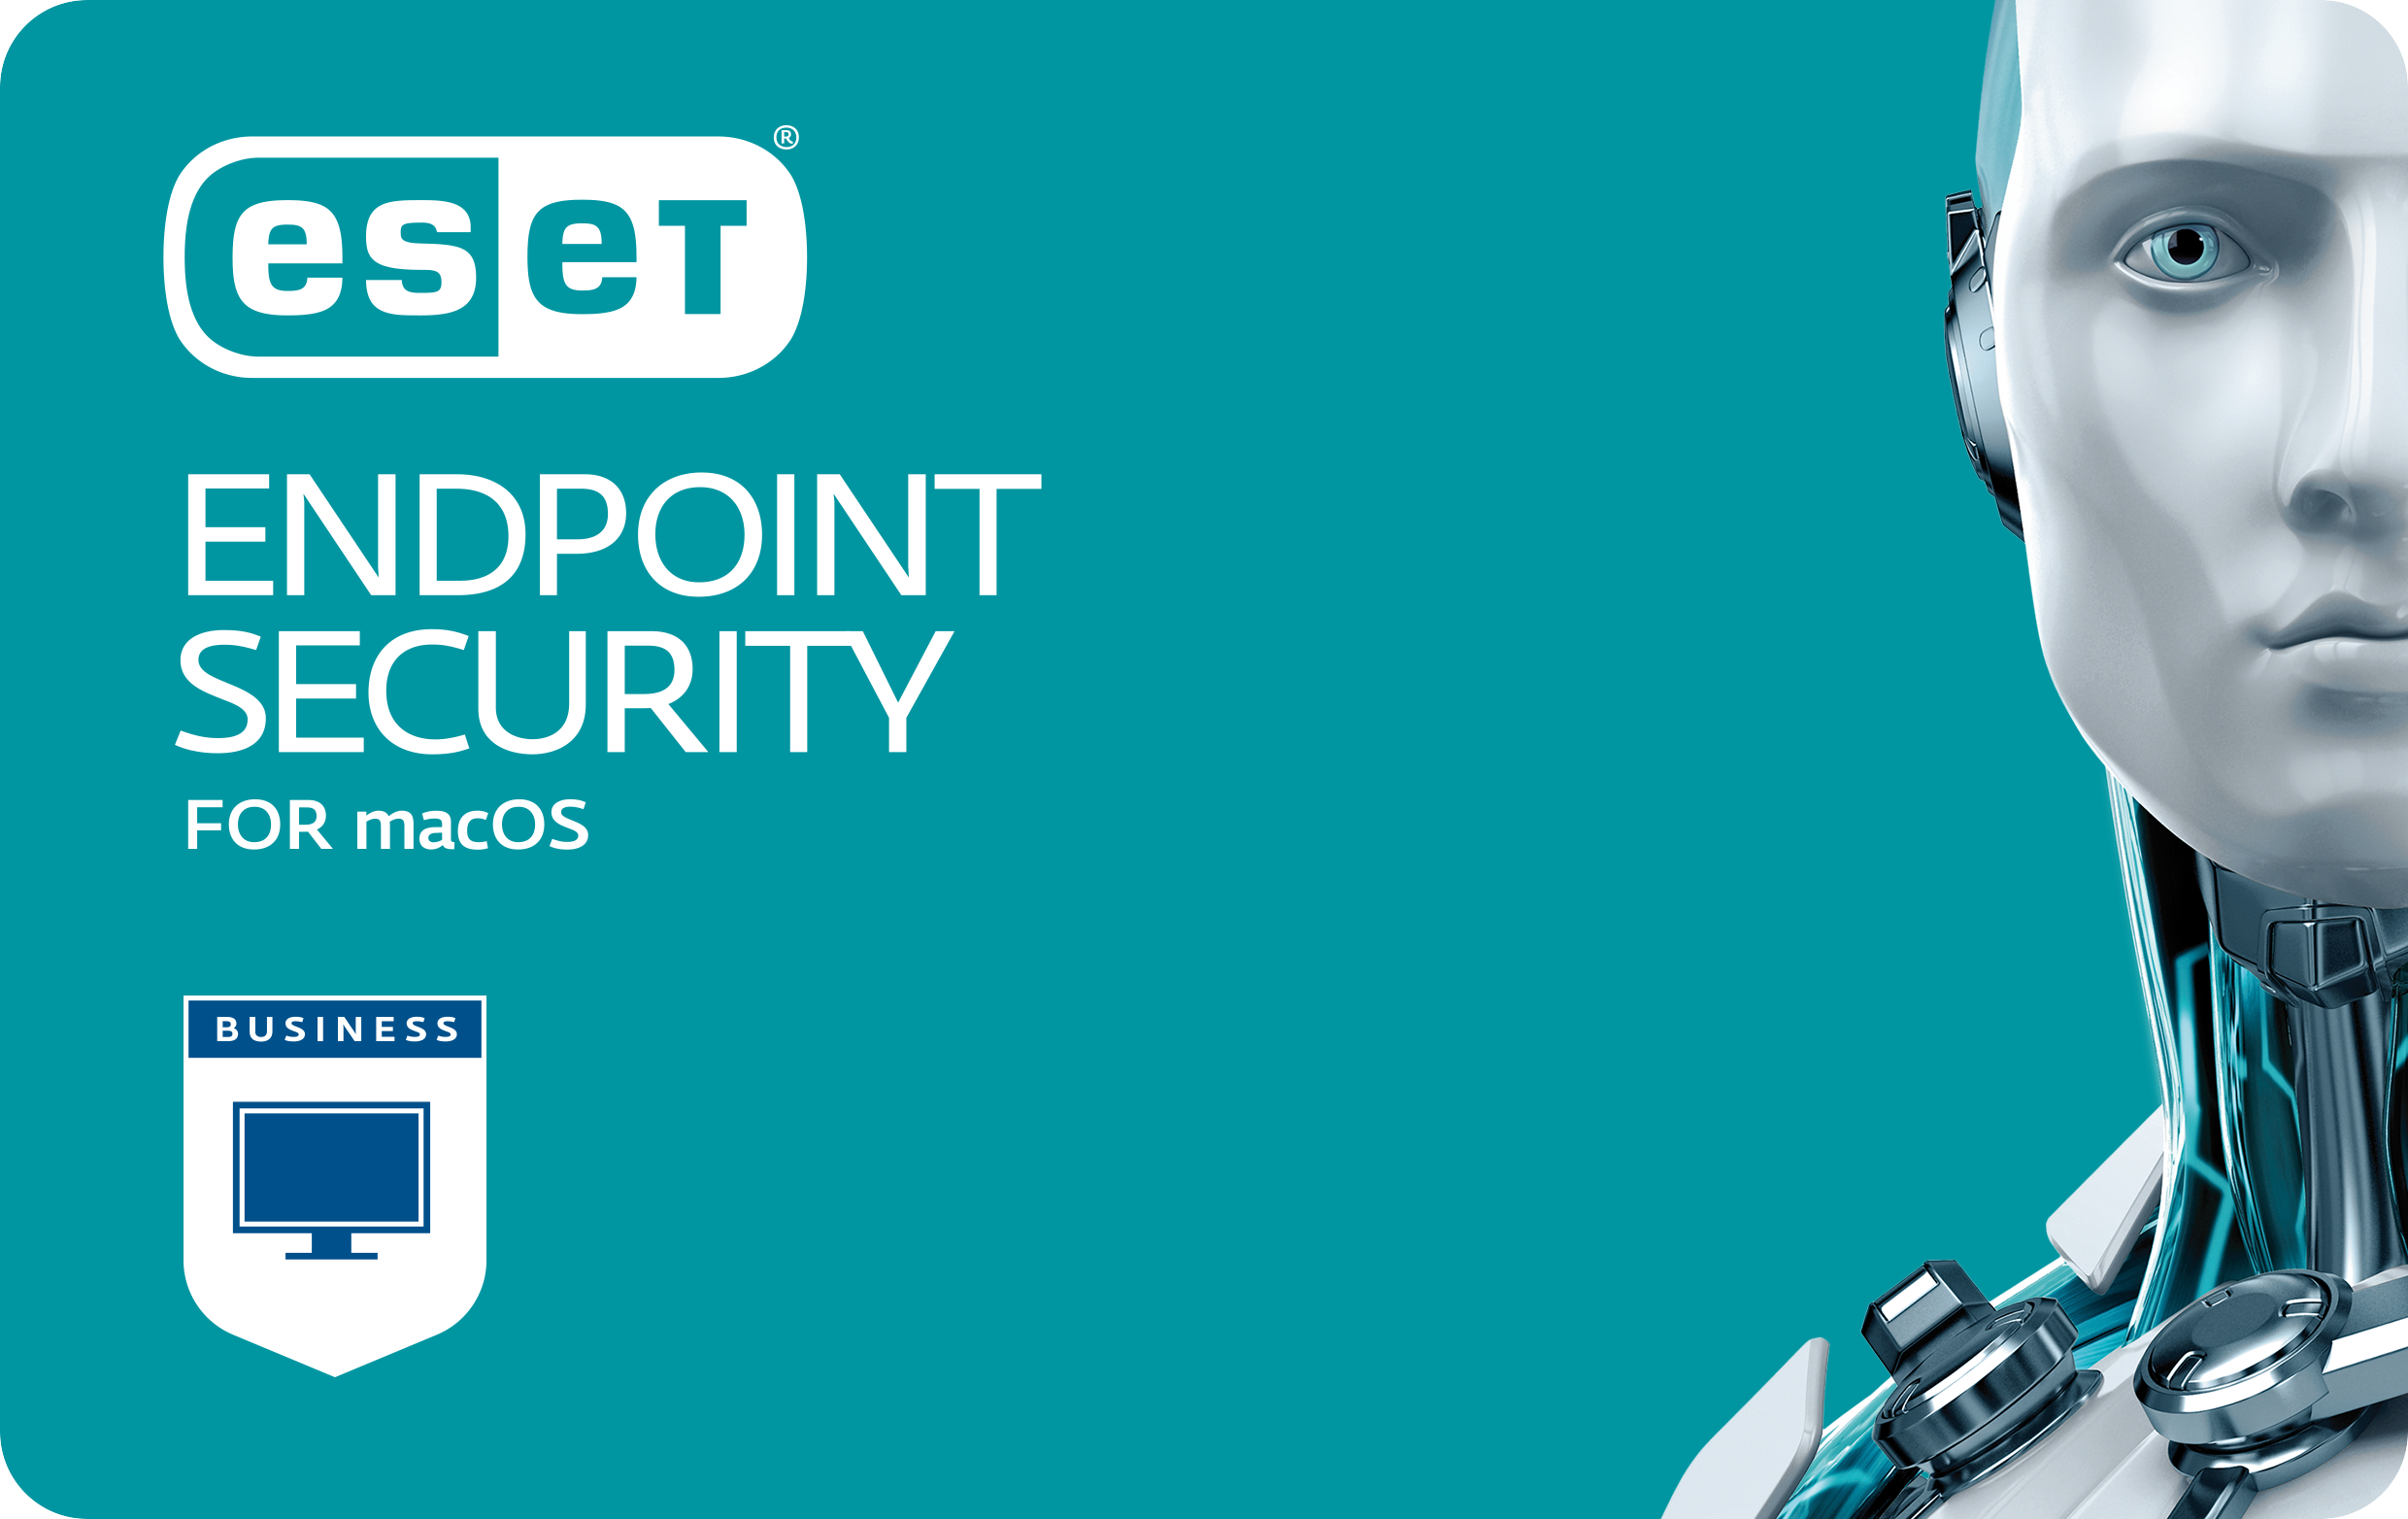 ESET Endpoint Security for macOS